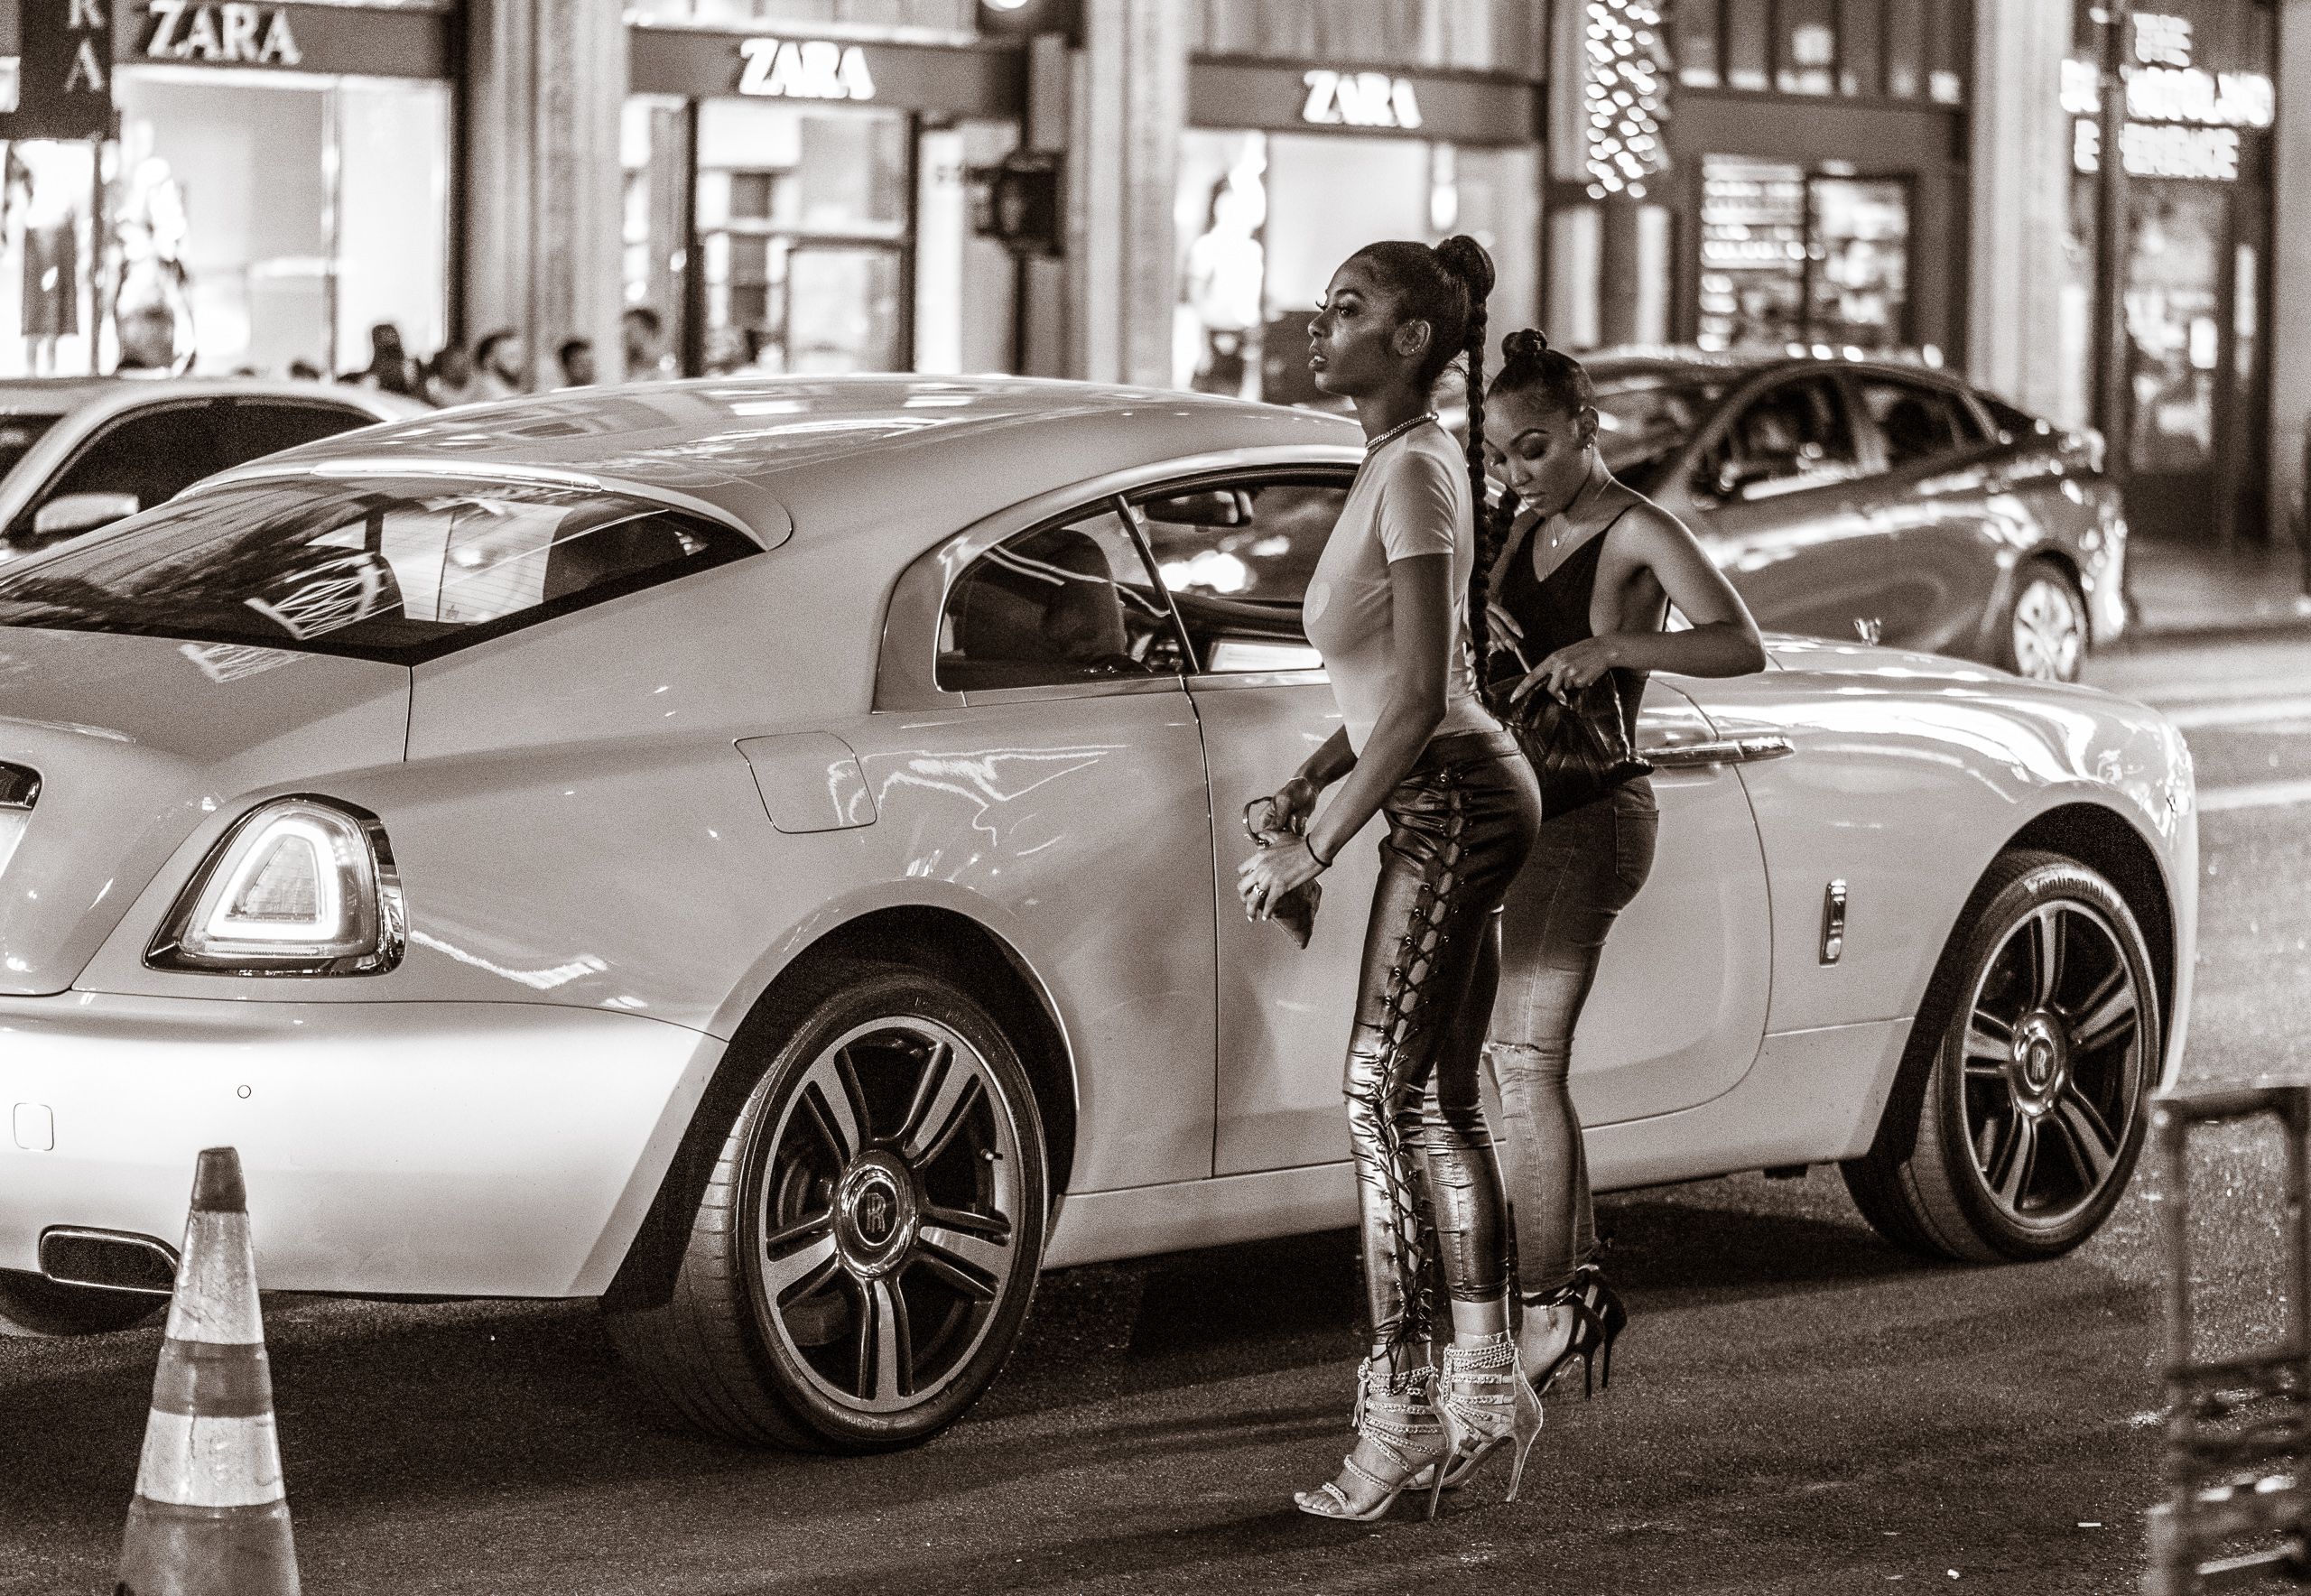 two women stand in the street, about to enter a Uber ride